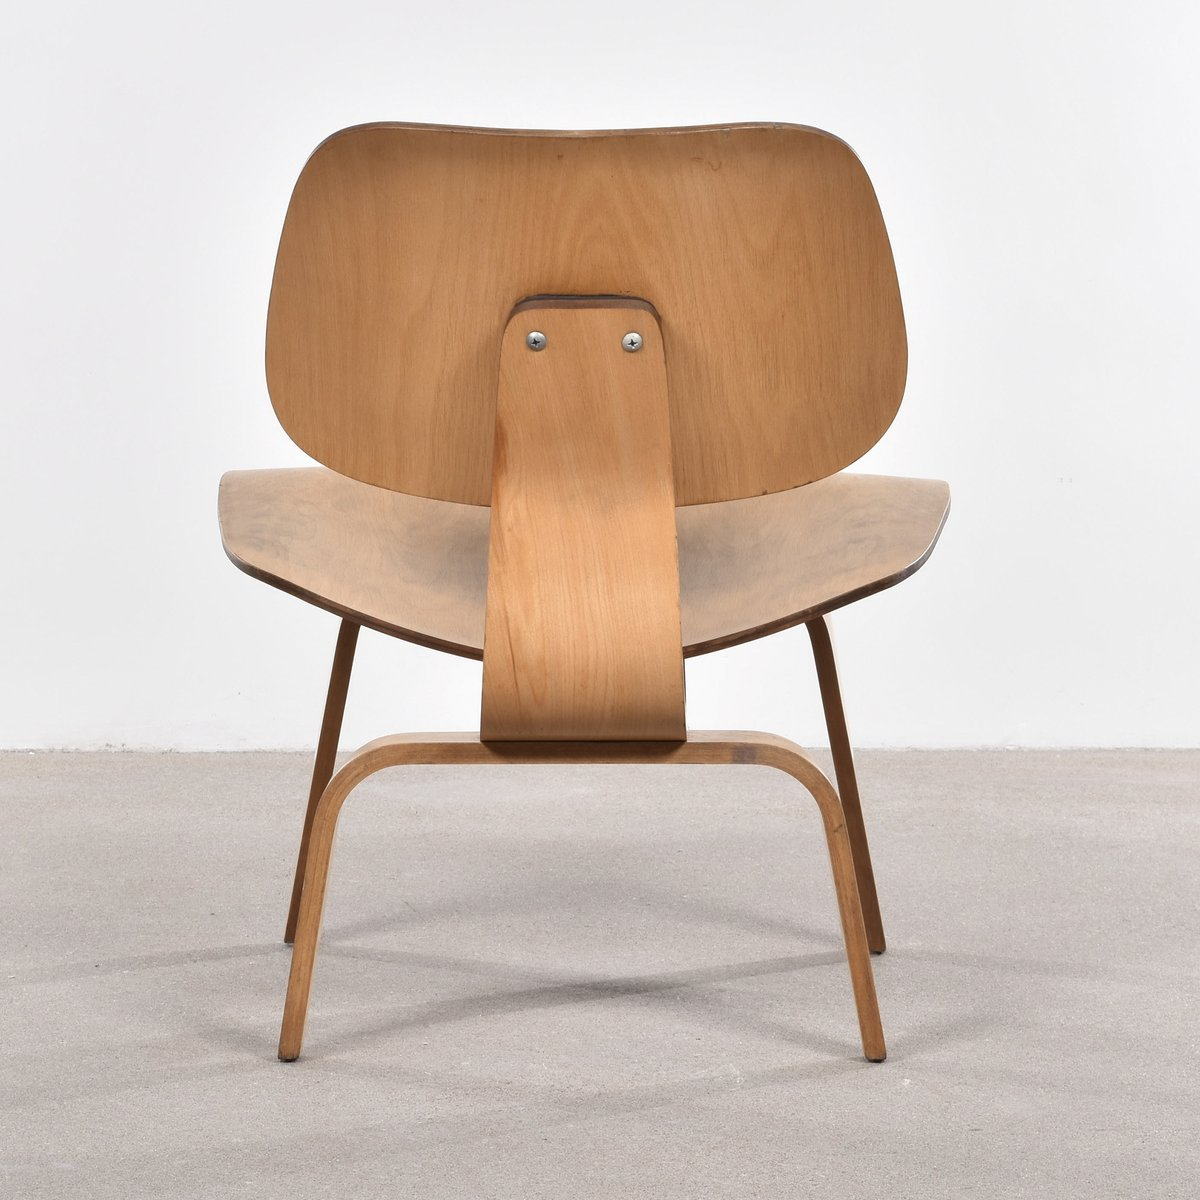 american lcw oak lounge chair by charles ray eames for herman miller 1950s for sale at pamono. Black Bedroom Furniture Sets. Home Design Ideas